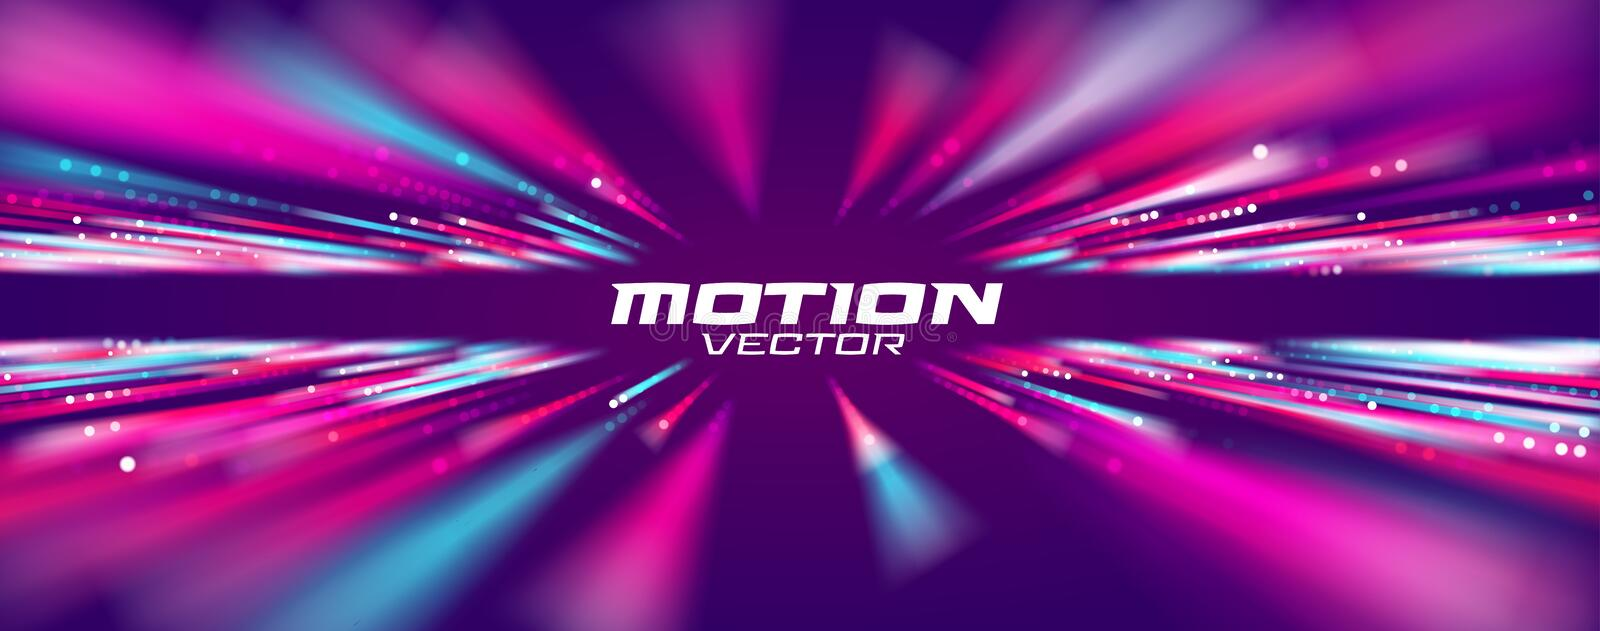 Motion speed line abstract vector background, Moving effect light stock illustration